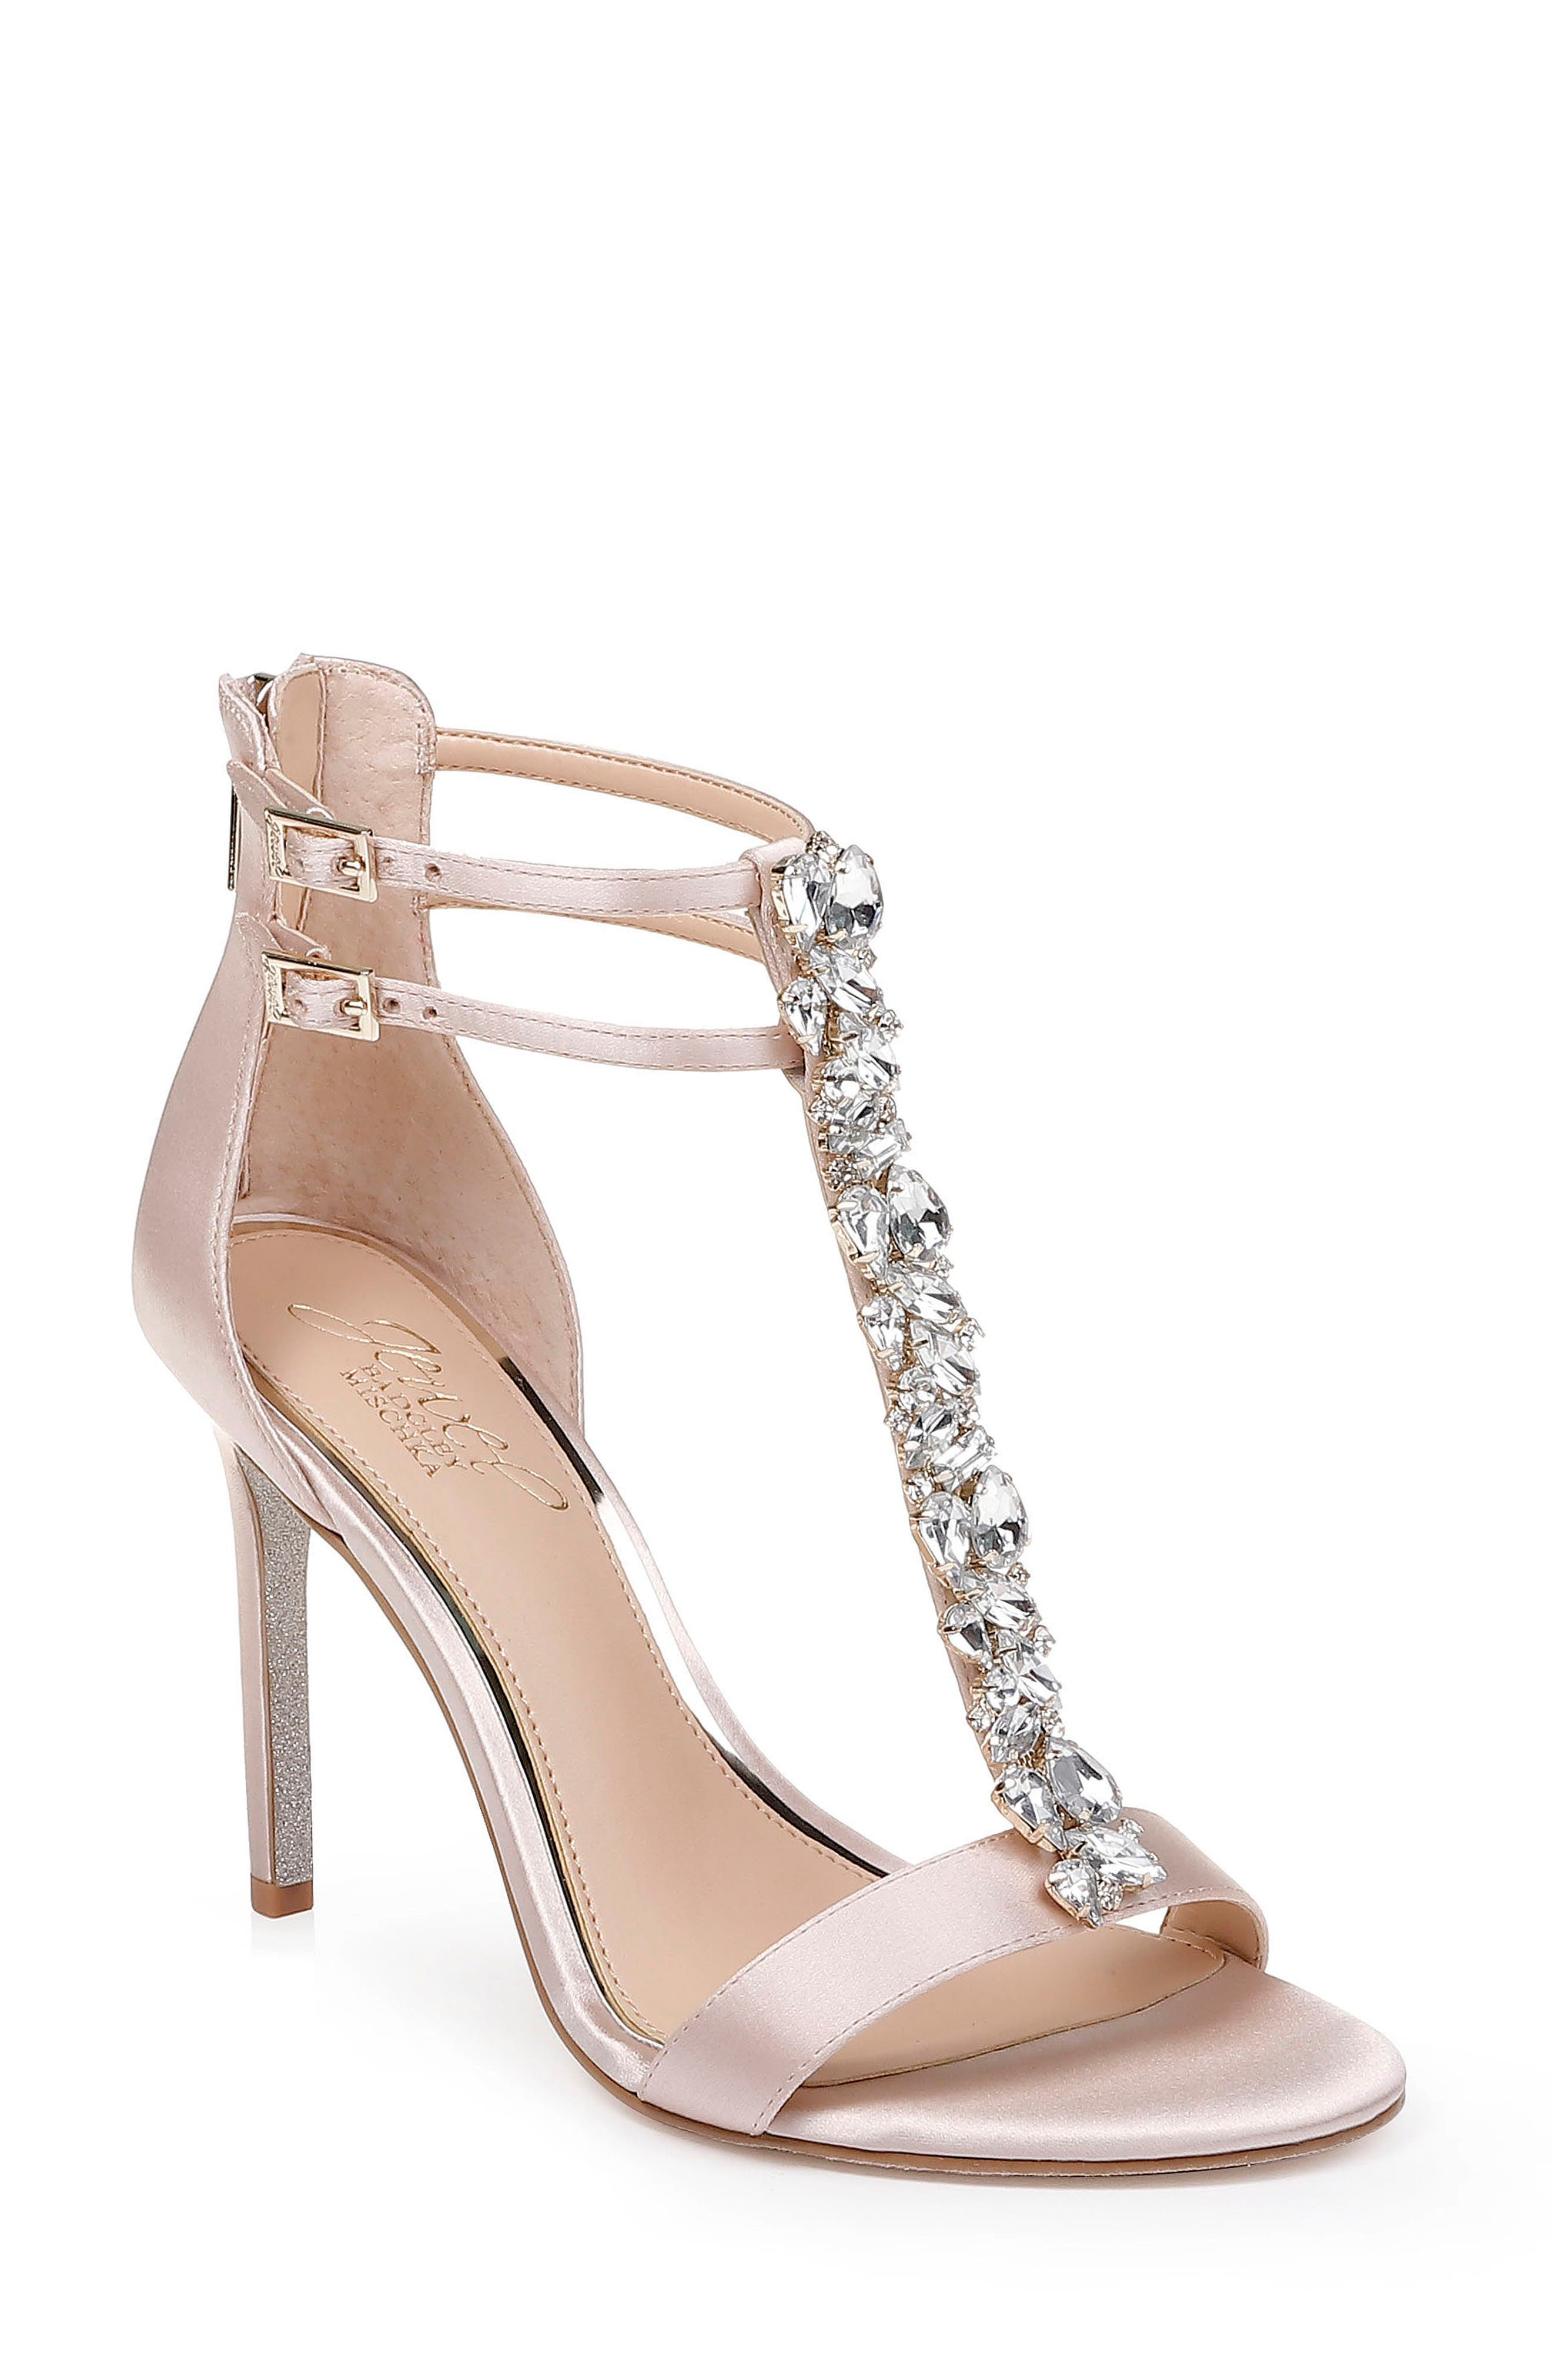 ad29e892f6eb Jewel Badgley Mischka Daughtry Embellished T-Strap Sandal